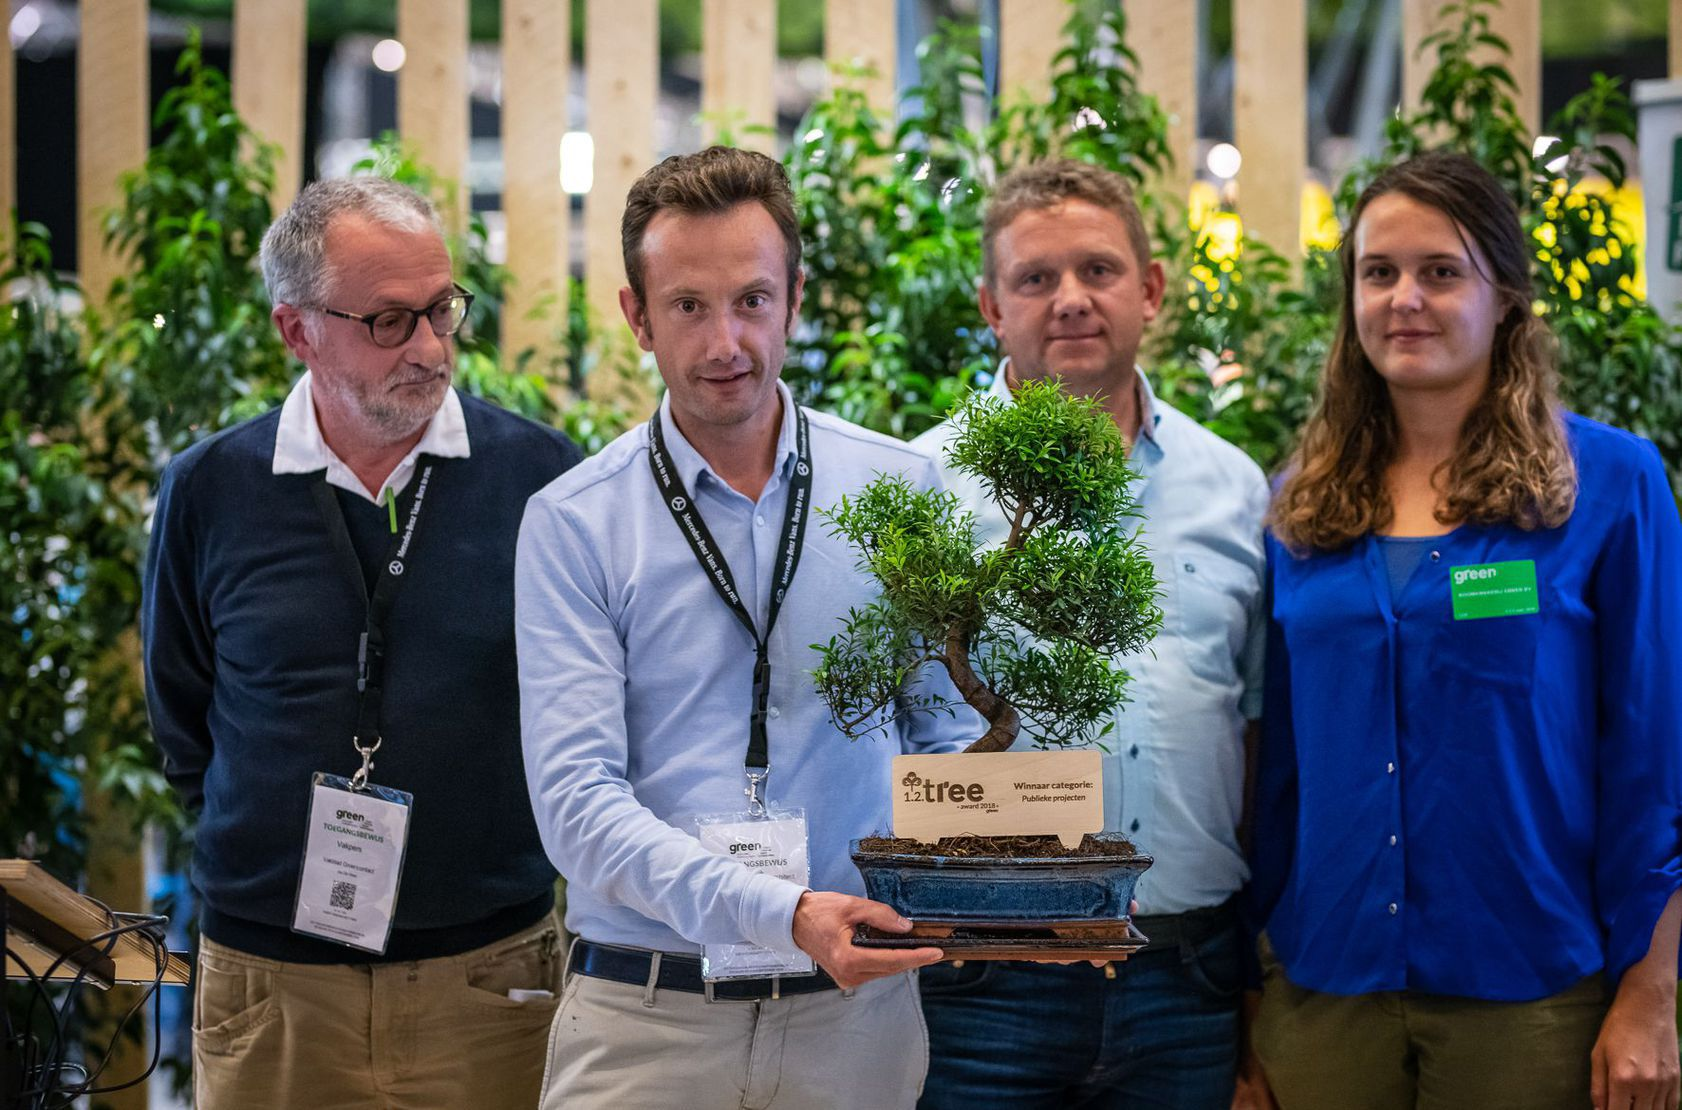 green-12tree-award-publiek-project.jpg